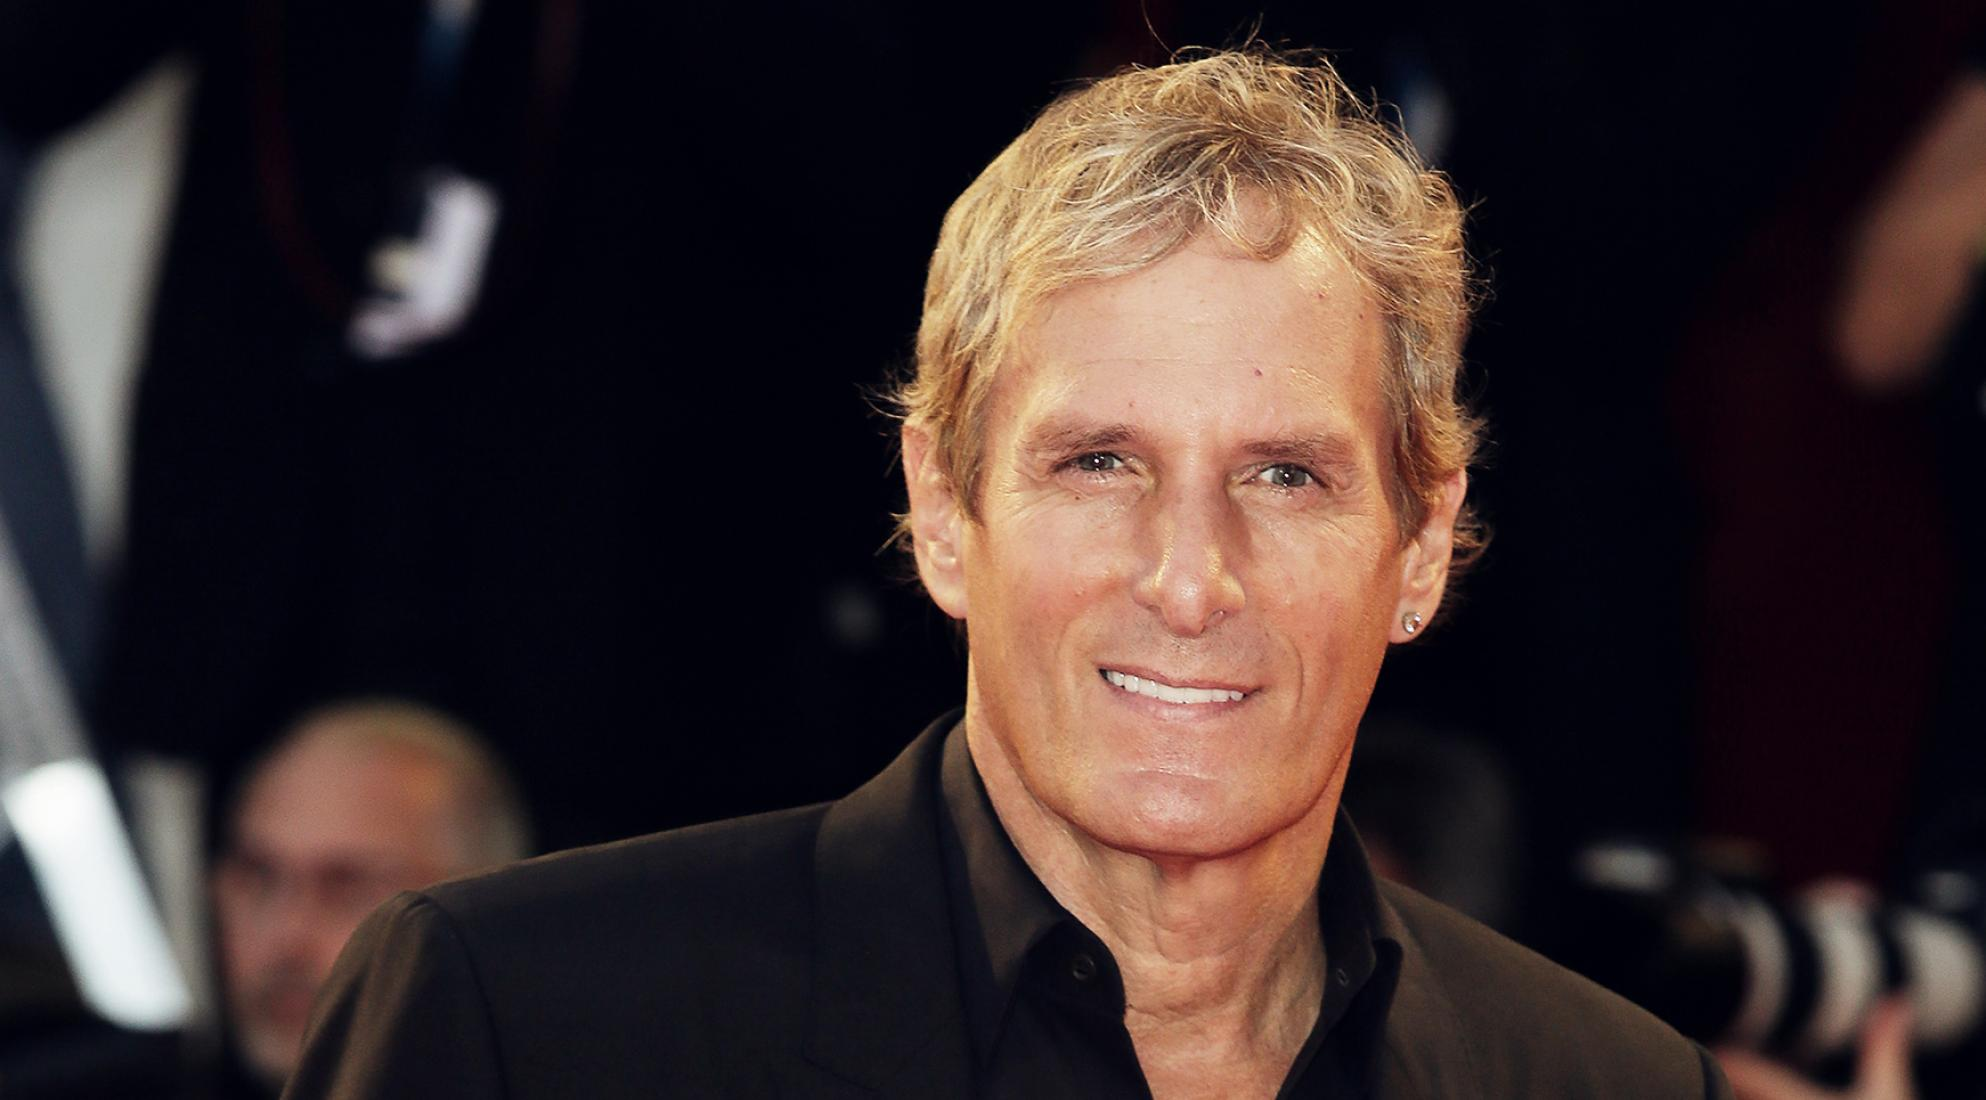 Michael Bolton who is he dating?